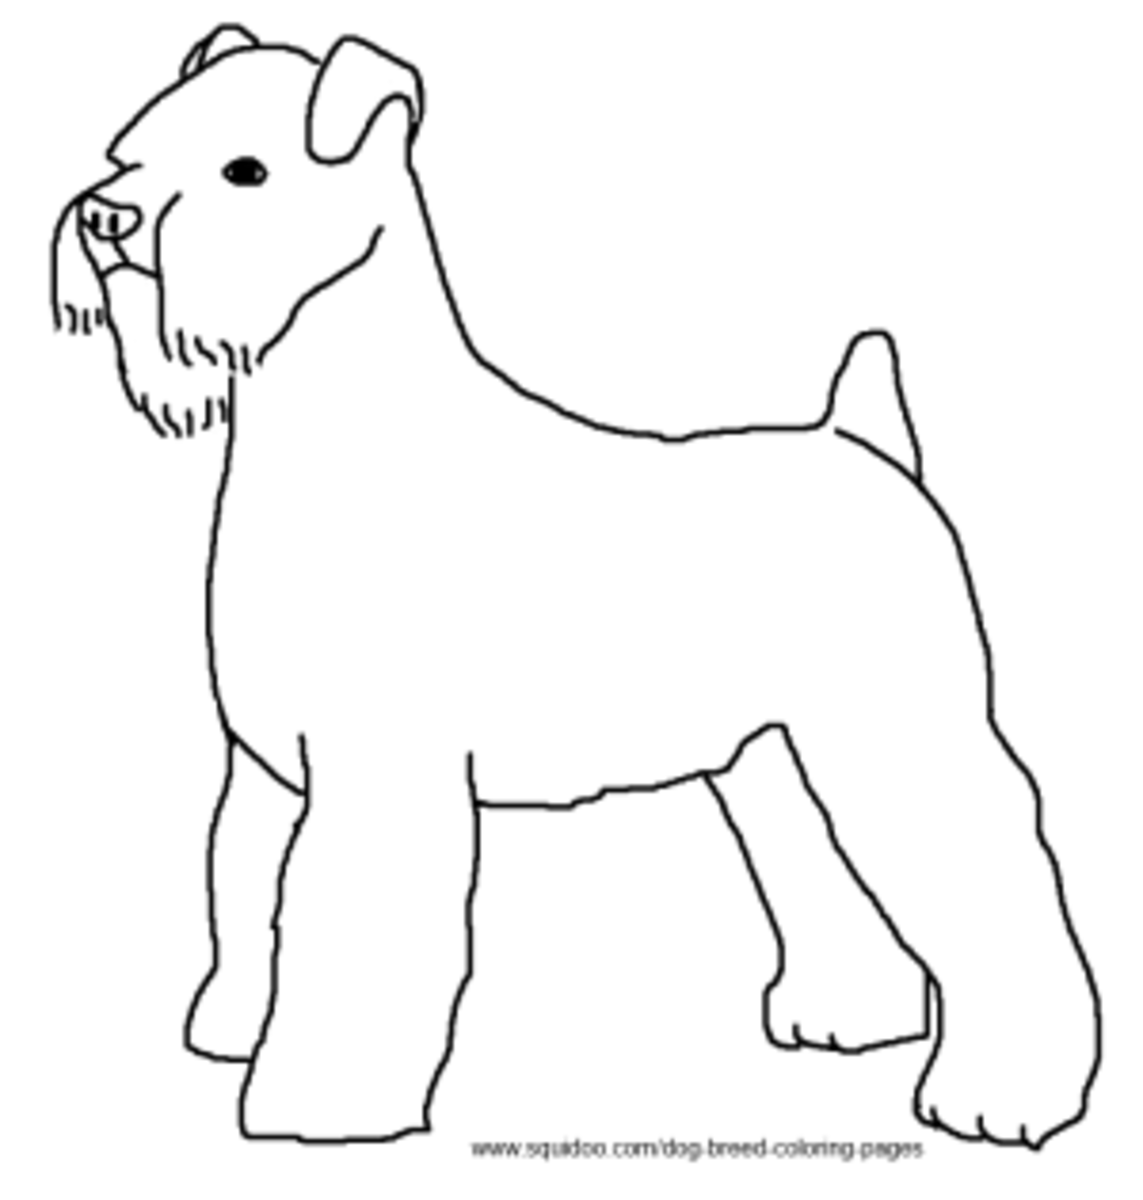 Schnauzer coloring pages